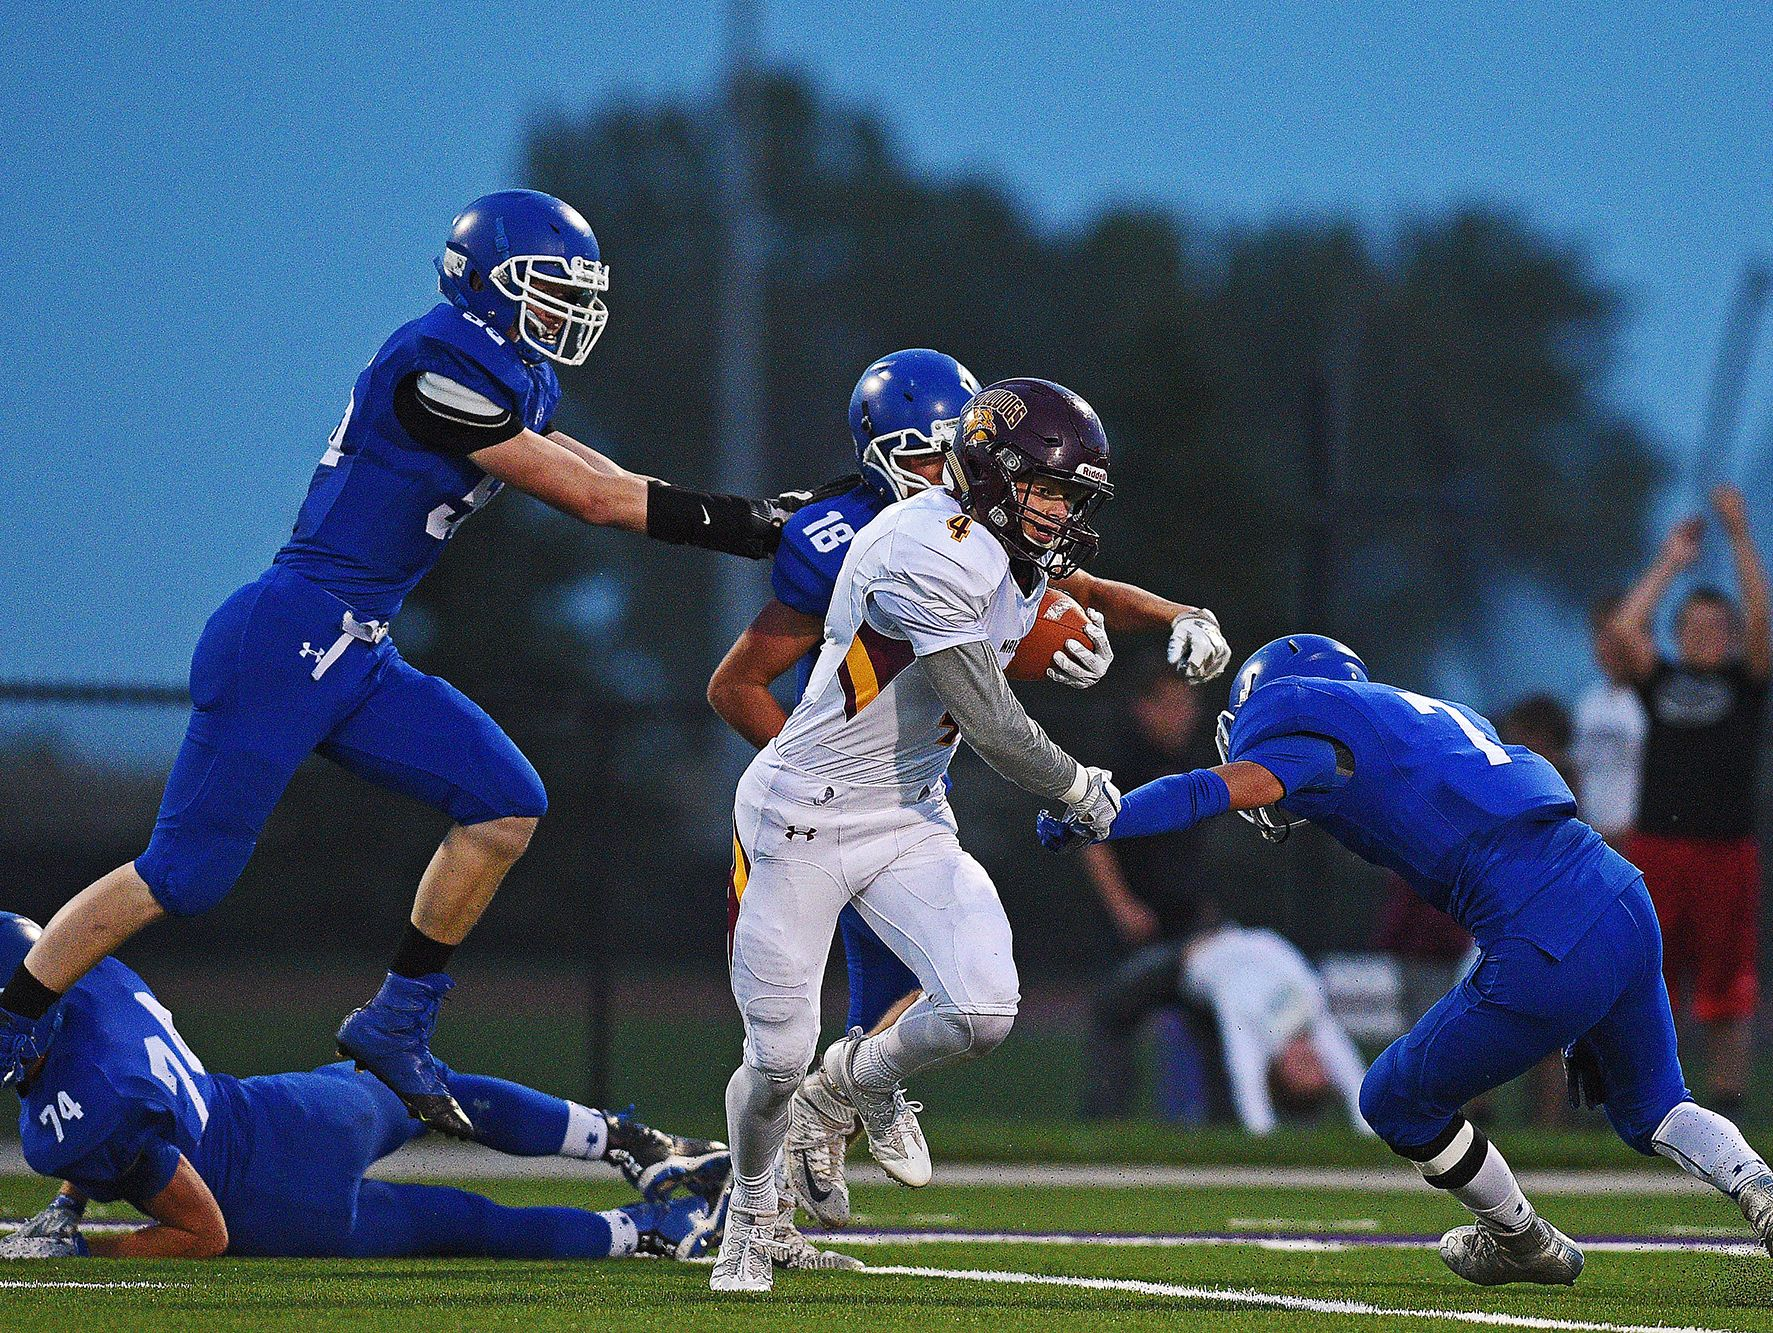 Madison's Mason Leighton (4) rushes with the ball during a game against Sioux Falls Christian Friday, Sept. 30, 2016, at Bob Young Field in Sioux Falls. The game against the Bulldogs was the first time Sioux Falls Christian had faced a Class 11A team during the season.